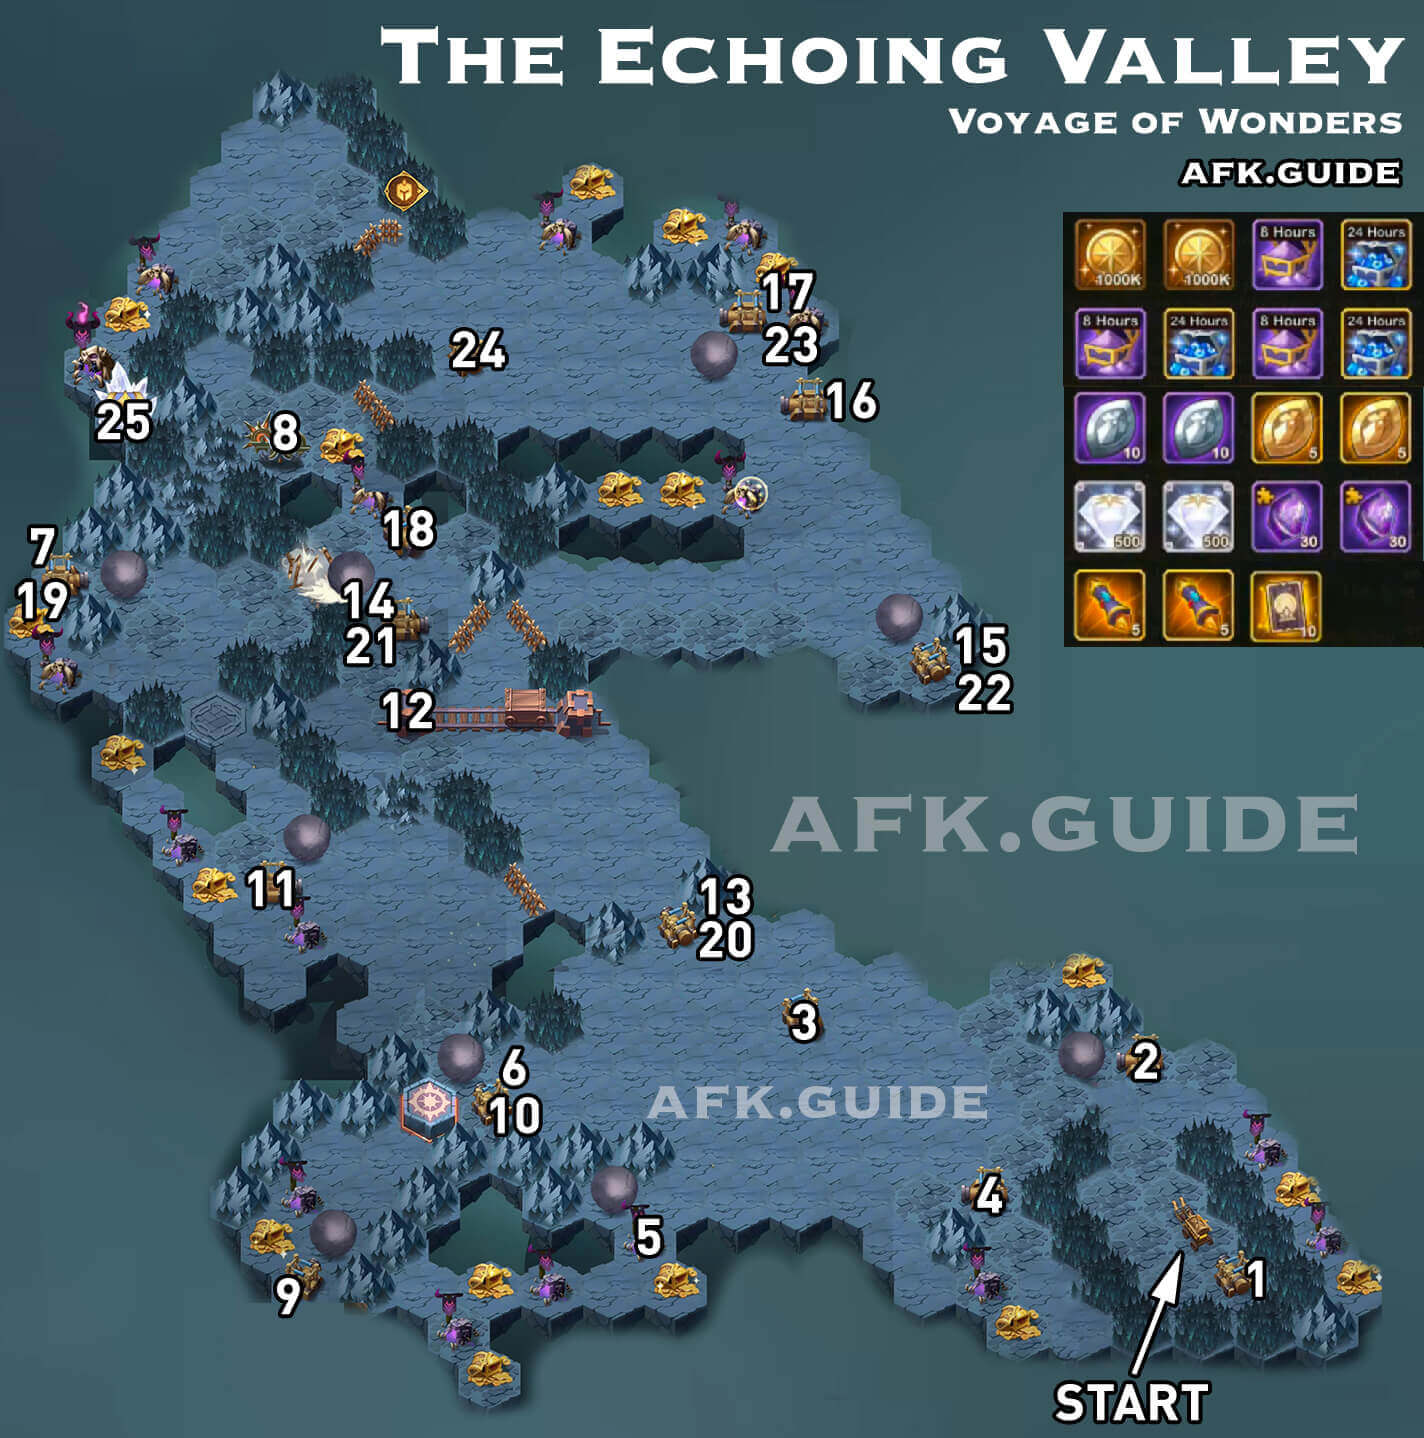 the echoing valley voyage of wonders